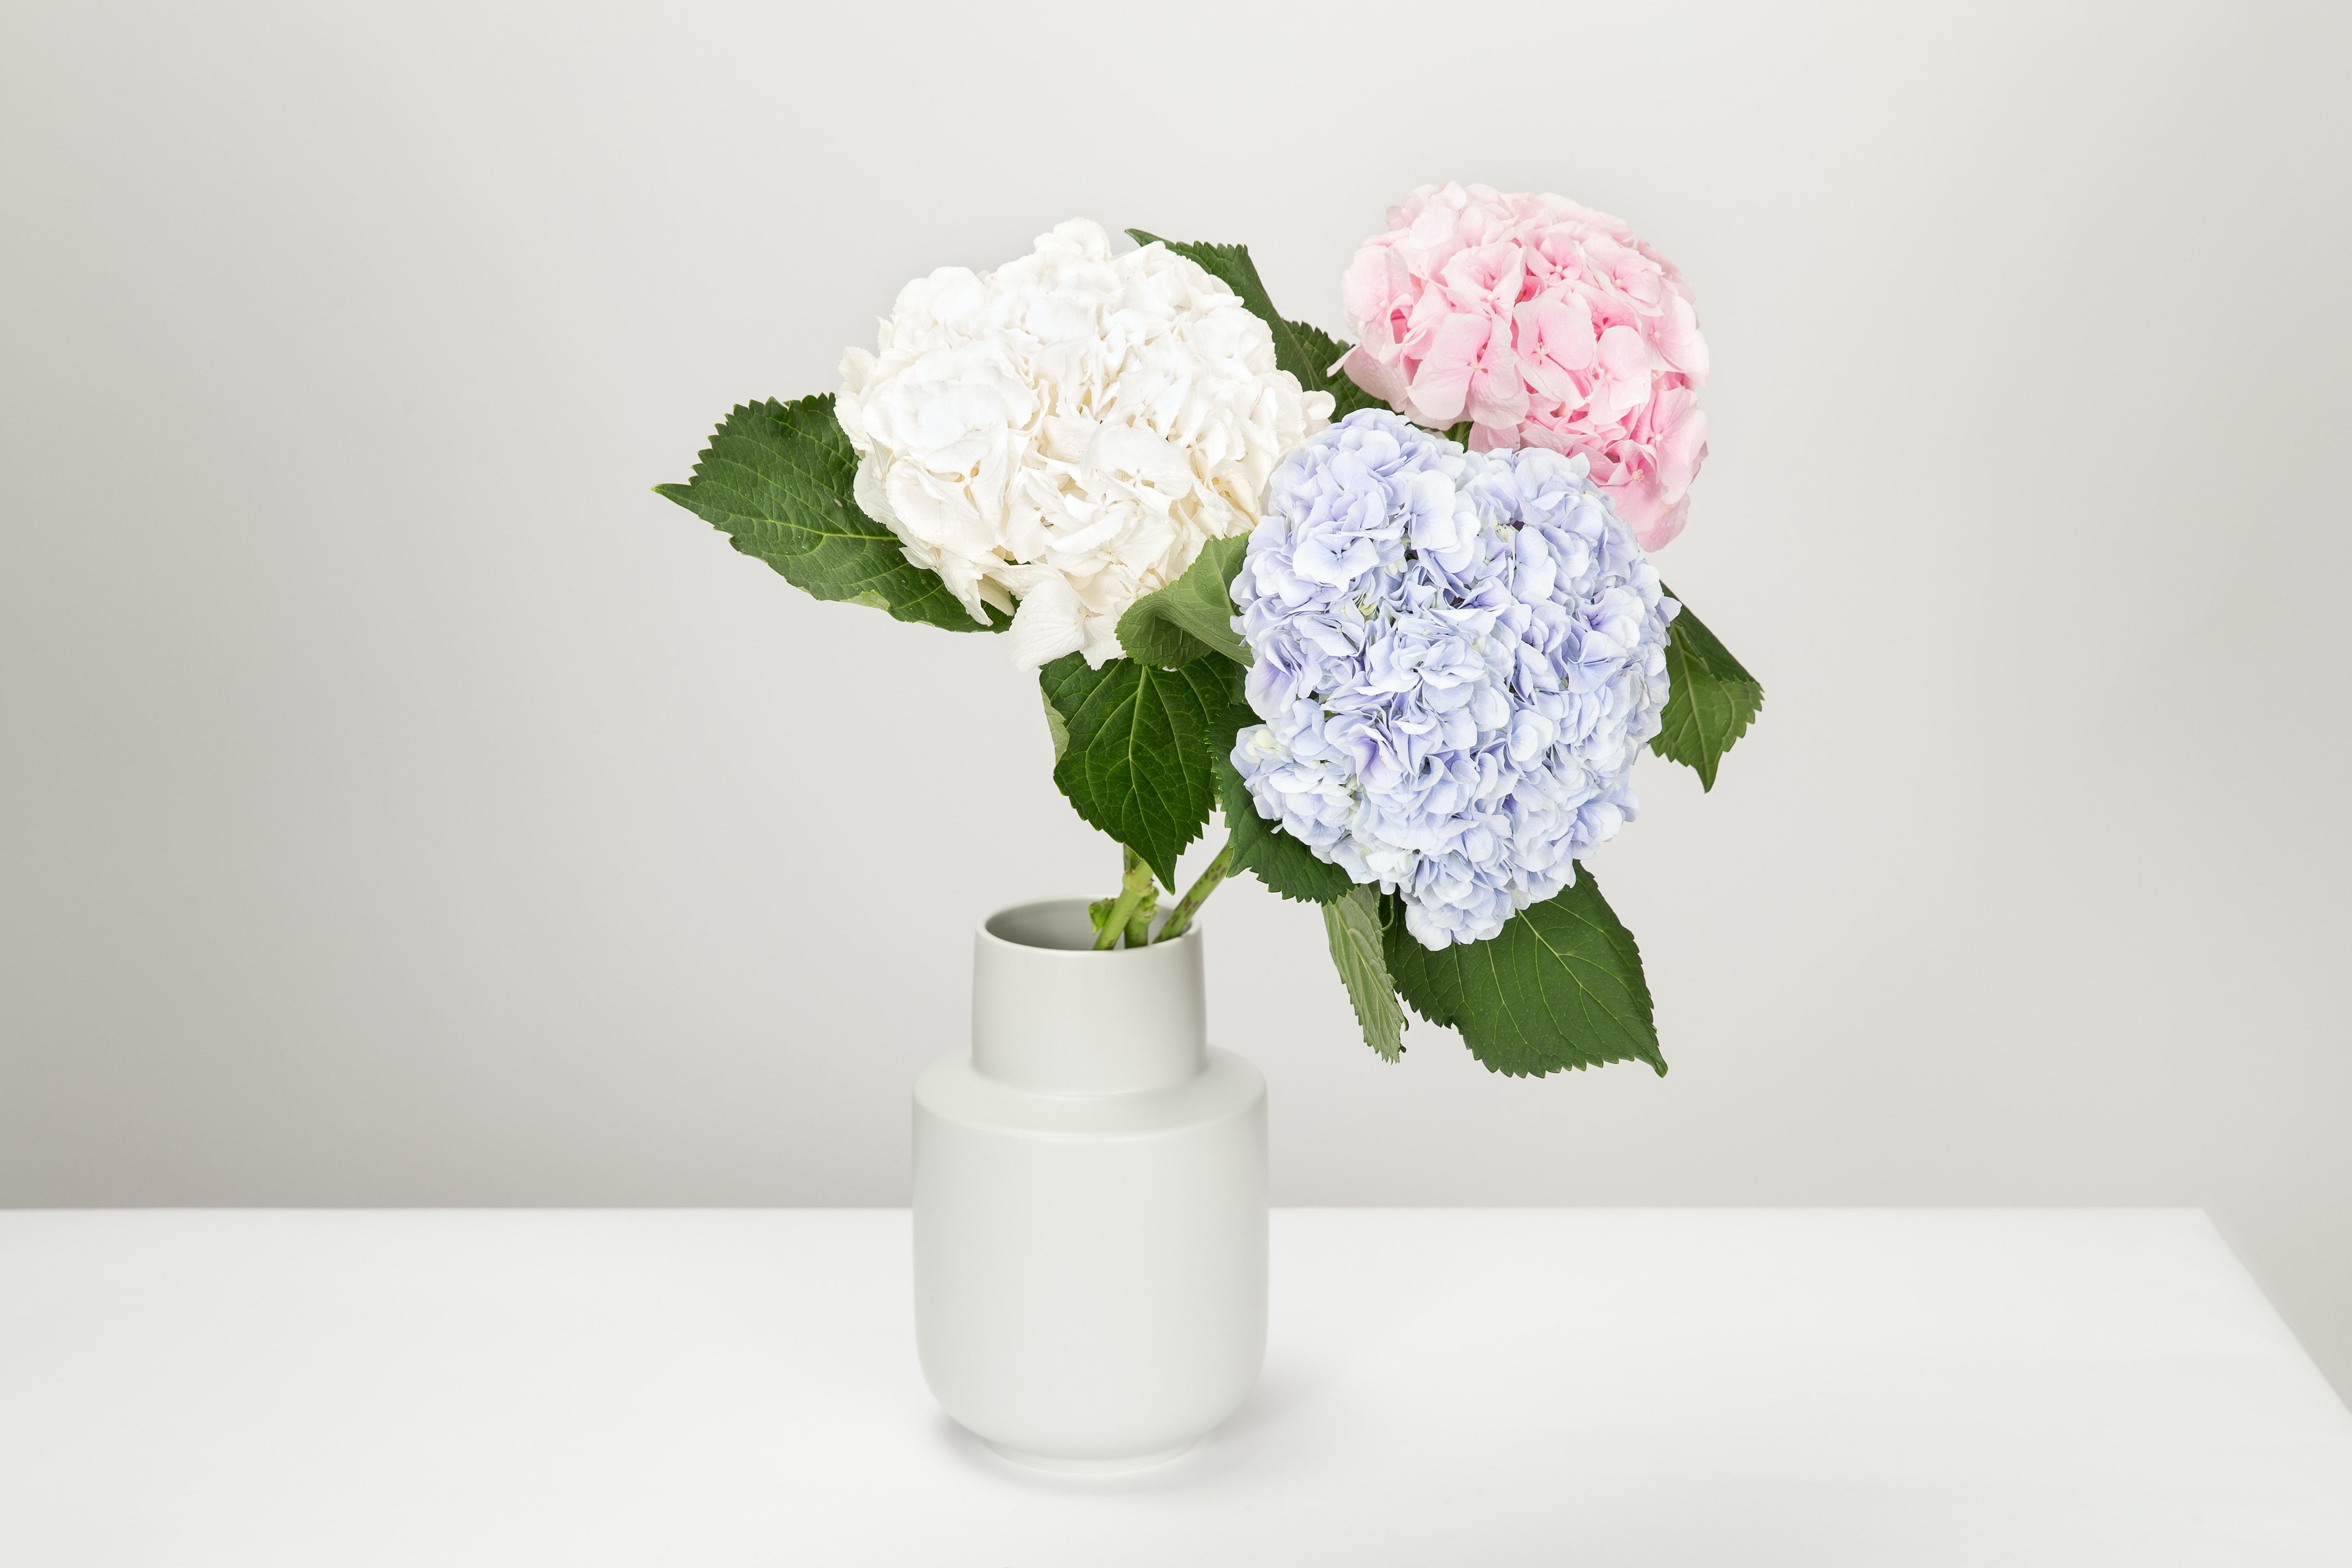 three pink, white, and purple petaled flowers in white vase